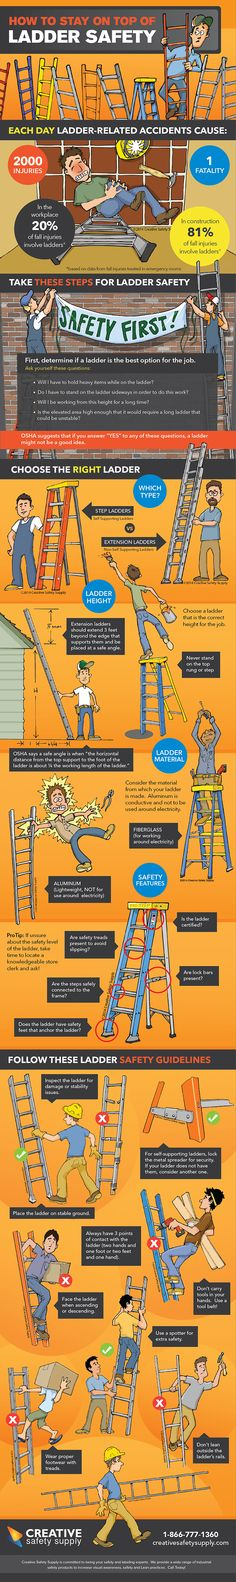 Get on top of Ladder Safety